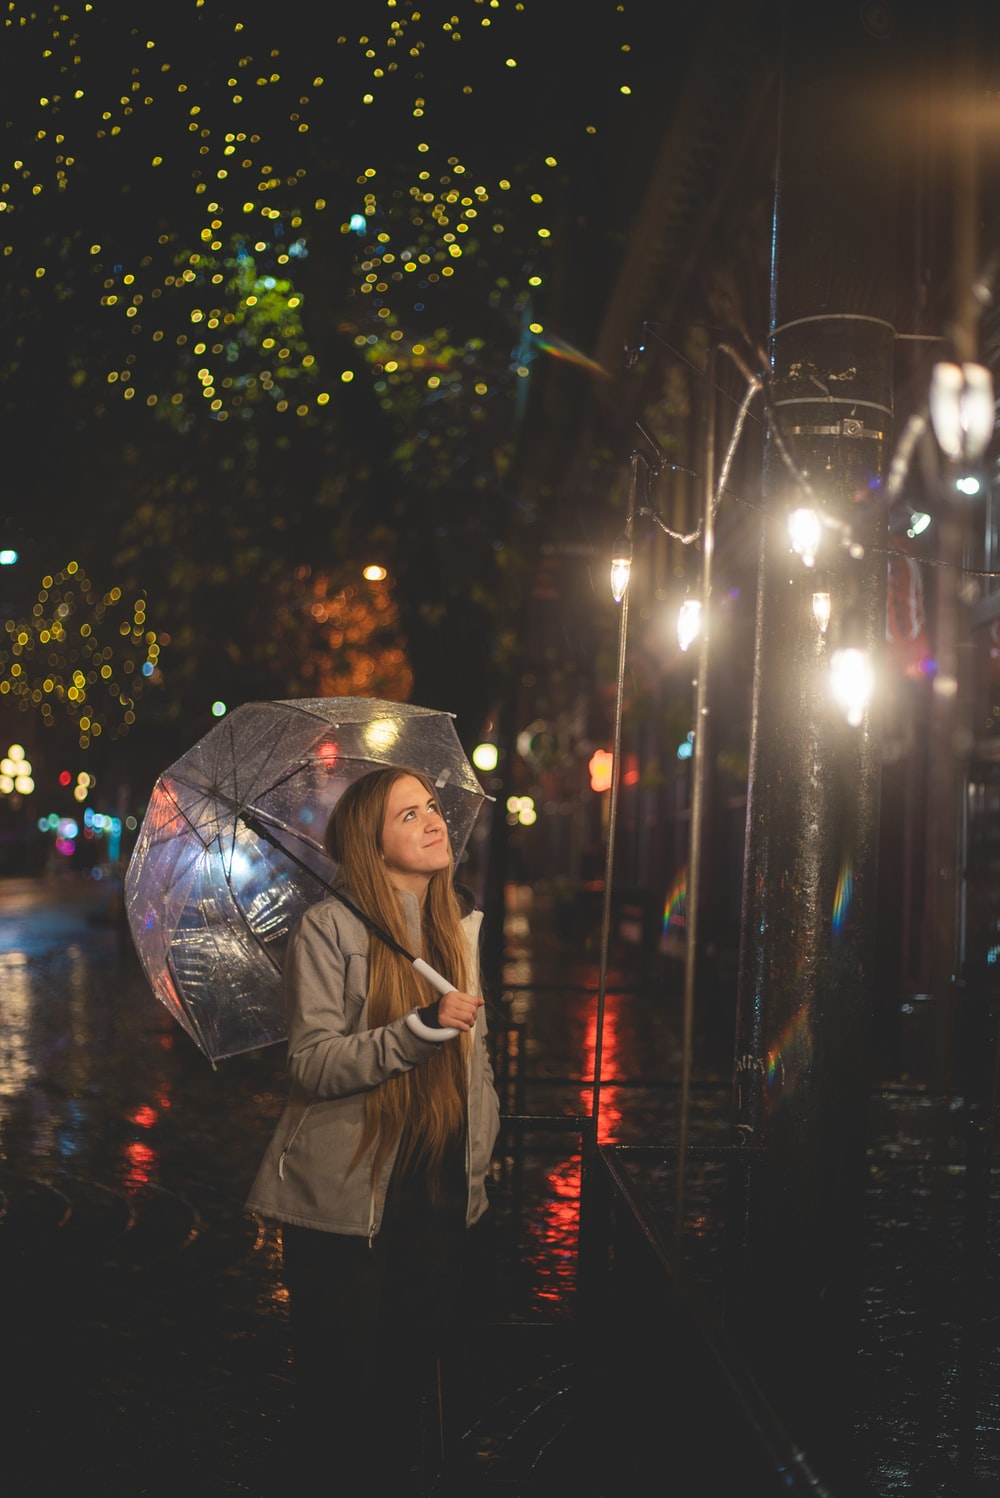 woman in brown coat holding umbrella during night time